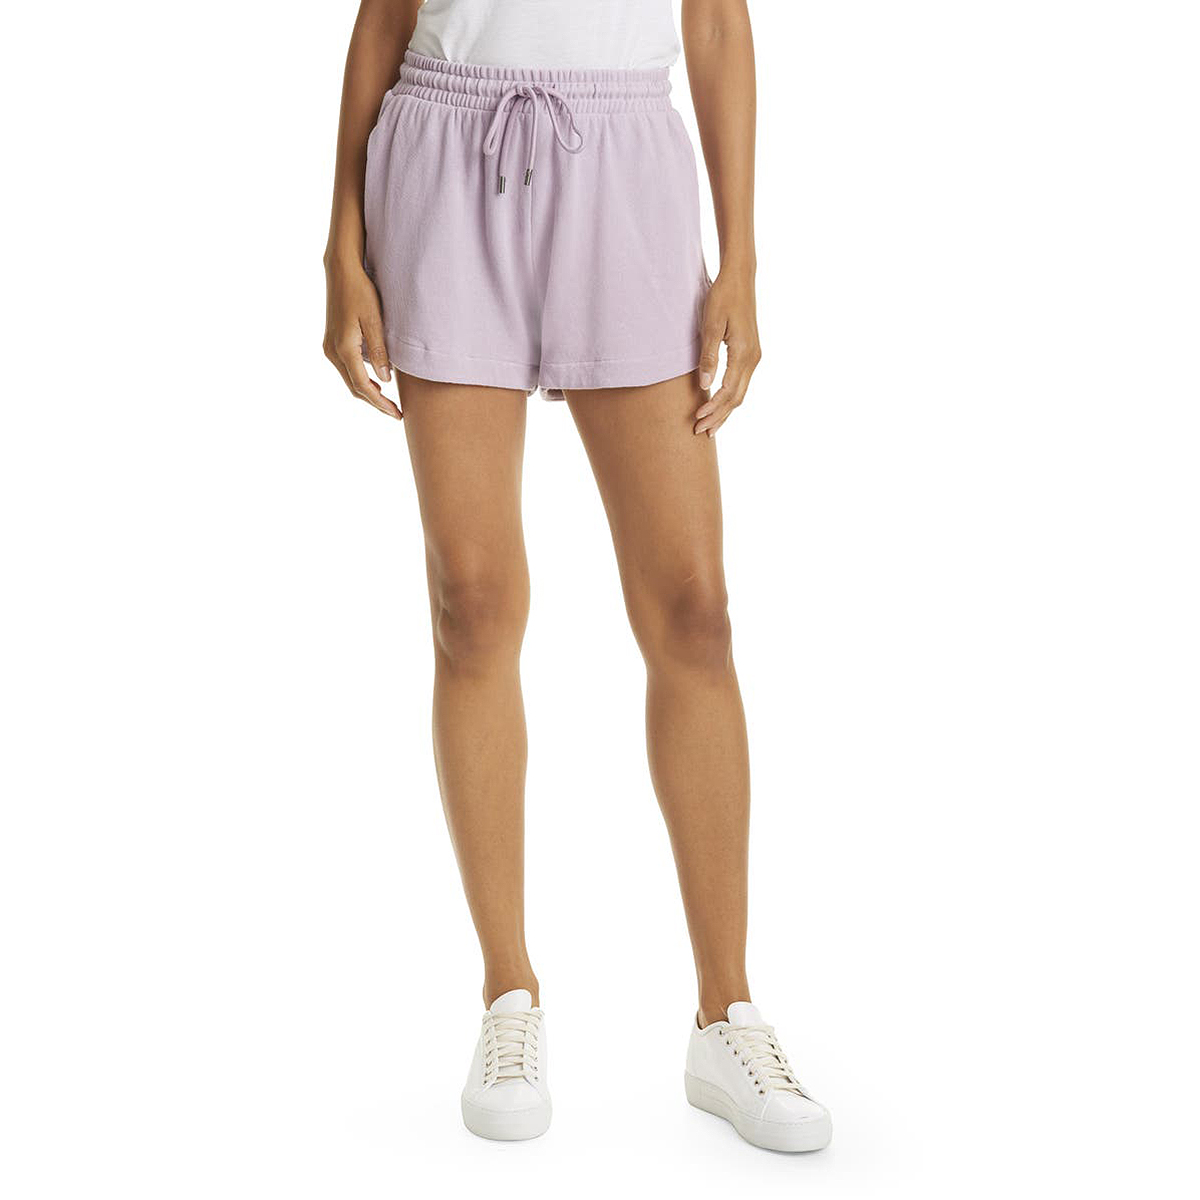 nordstrom-sale-terry-shorts